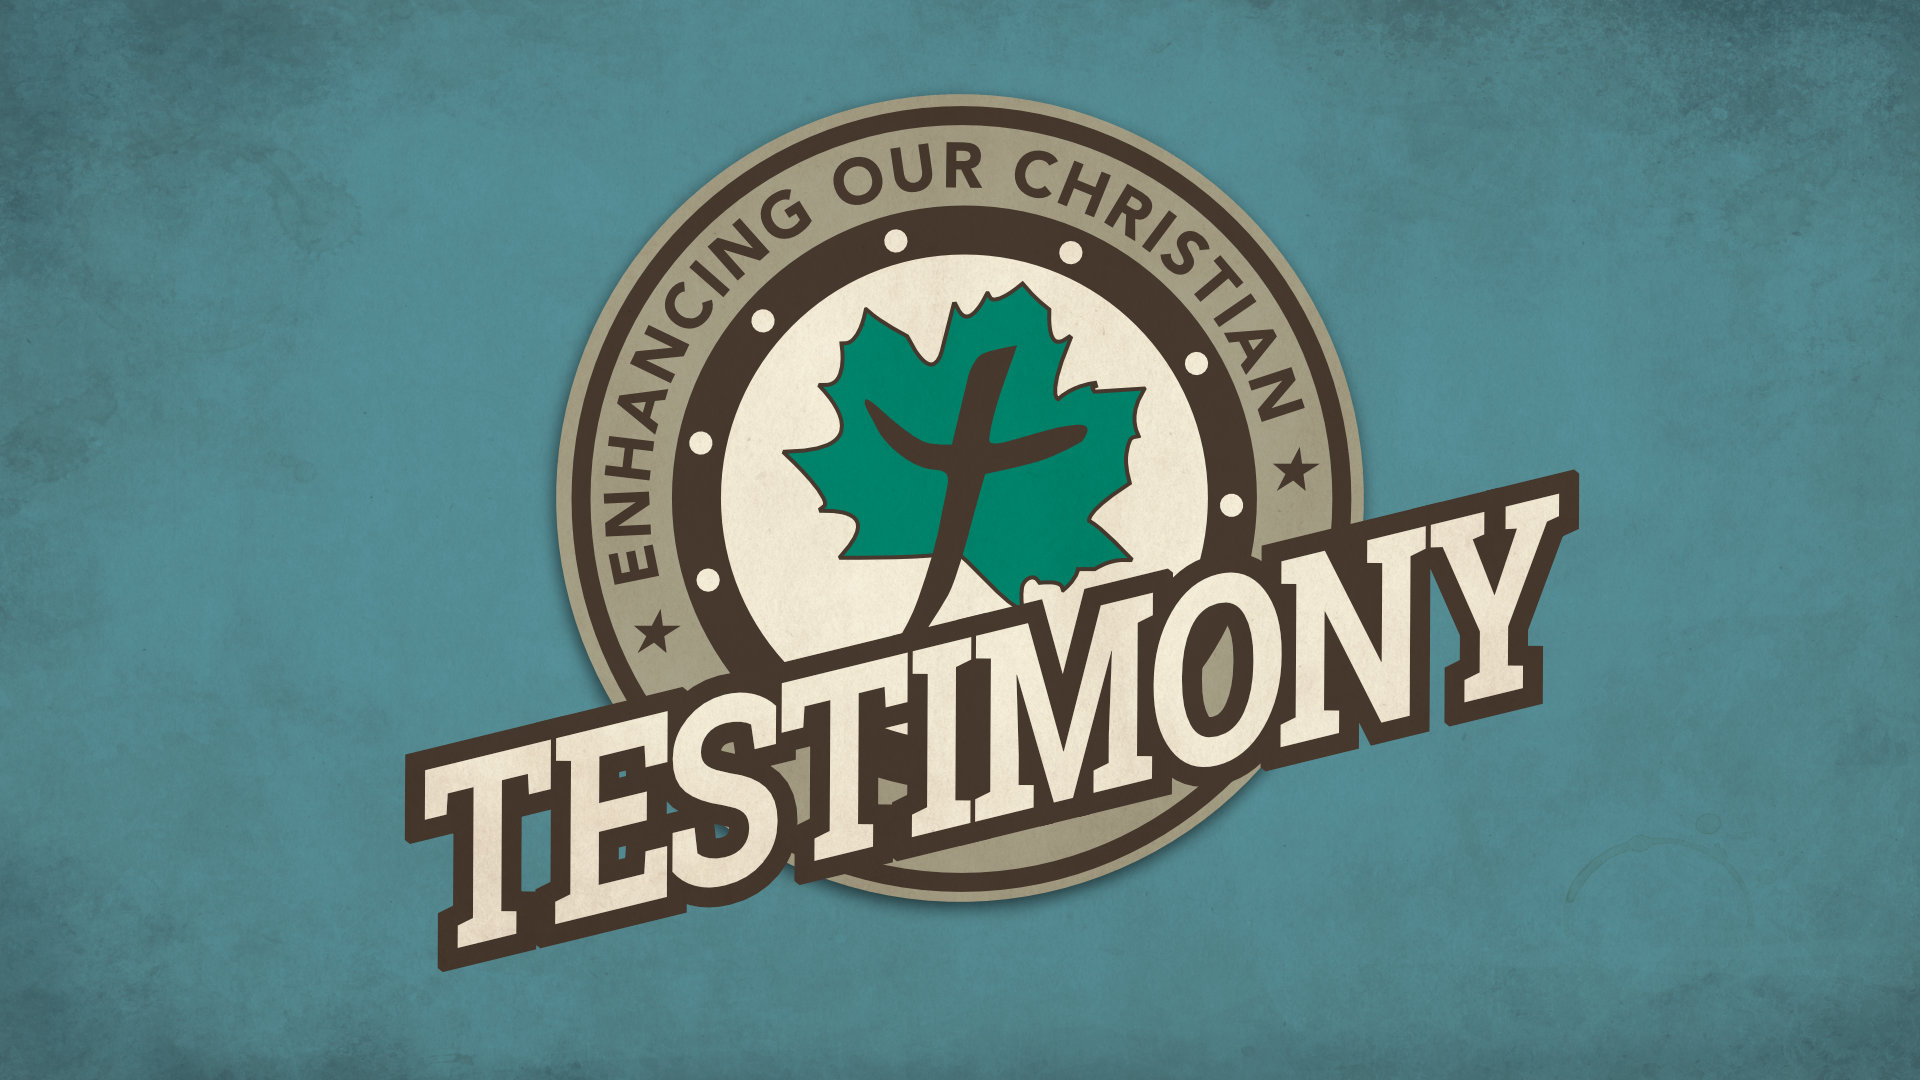 Enhancing Our Christian Testimony • Mar. 5 - April 2, 2017